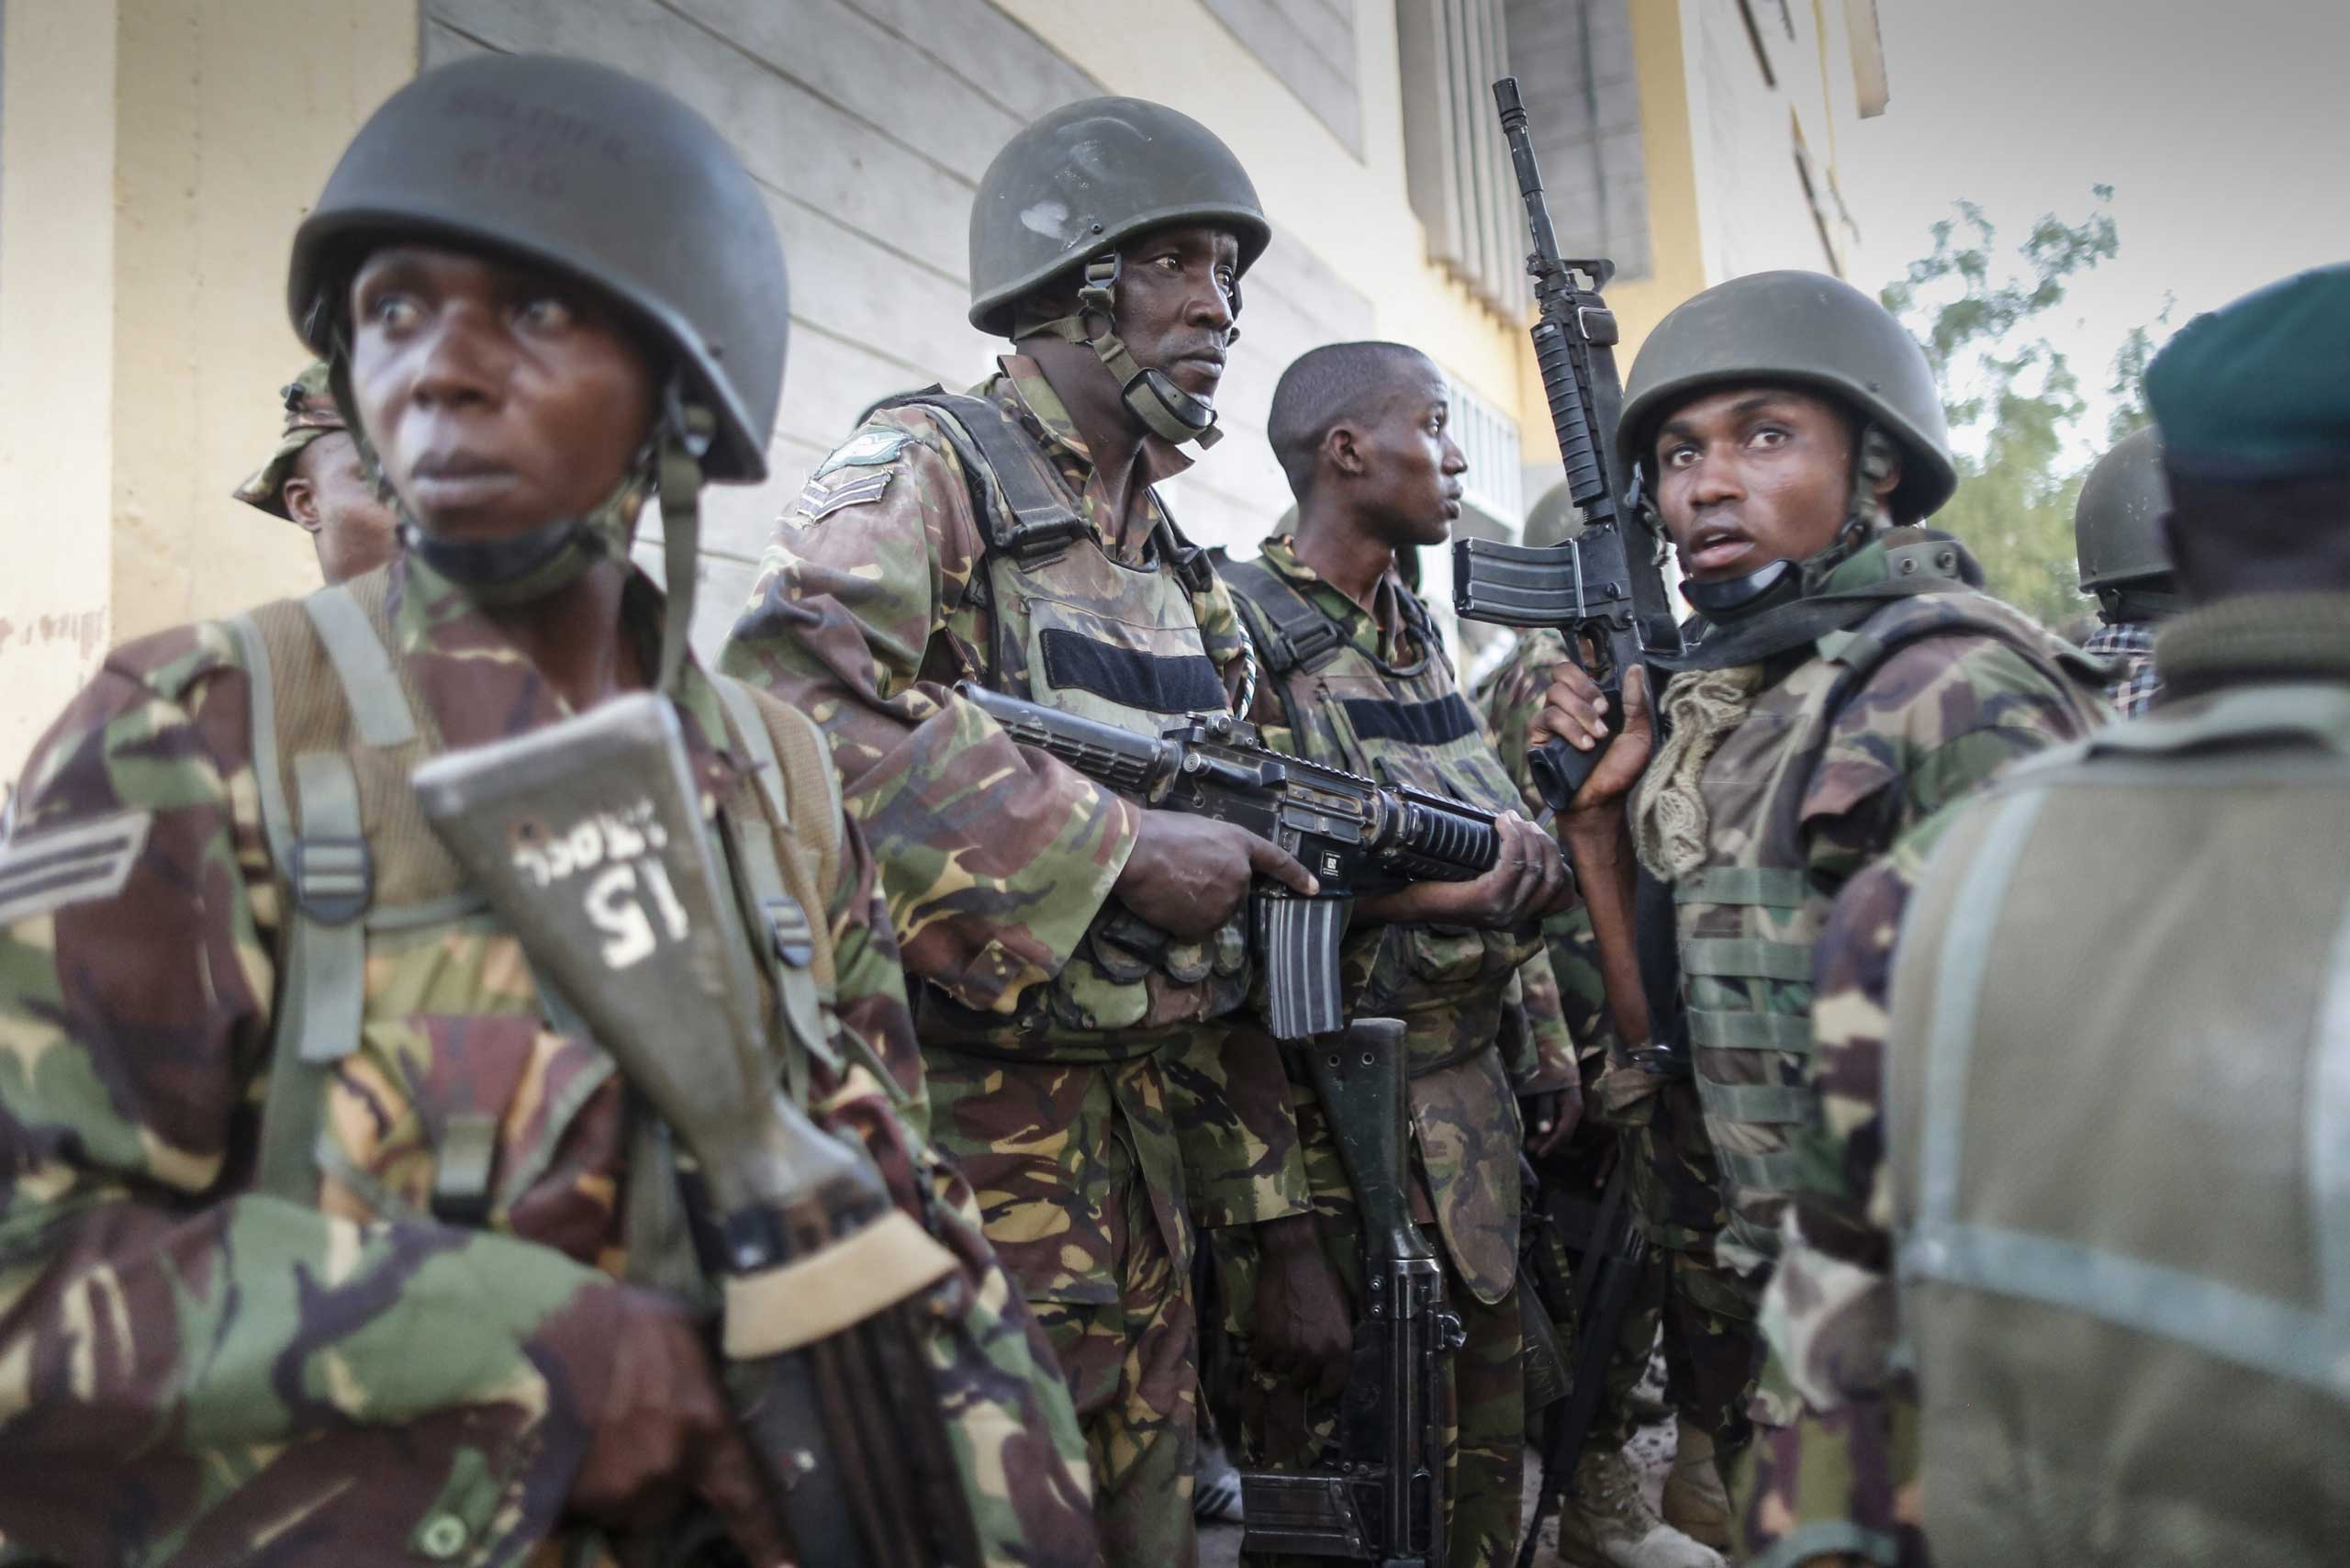 Kenyan soldiers prepare to sweep a building at Garissa University College after gunmen attacked the campus, in northeastern Kenya, on April 2, 2015.